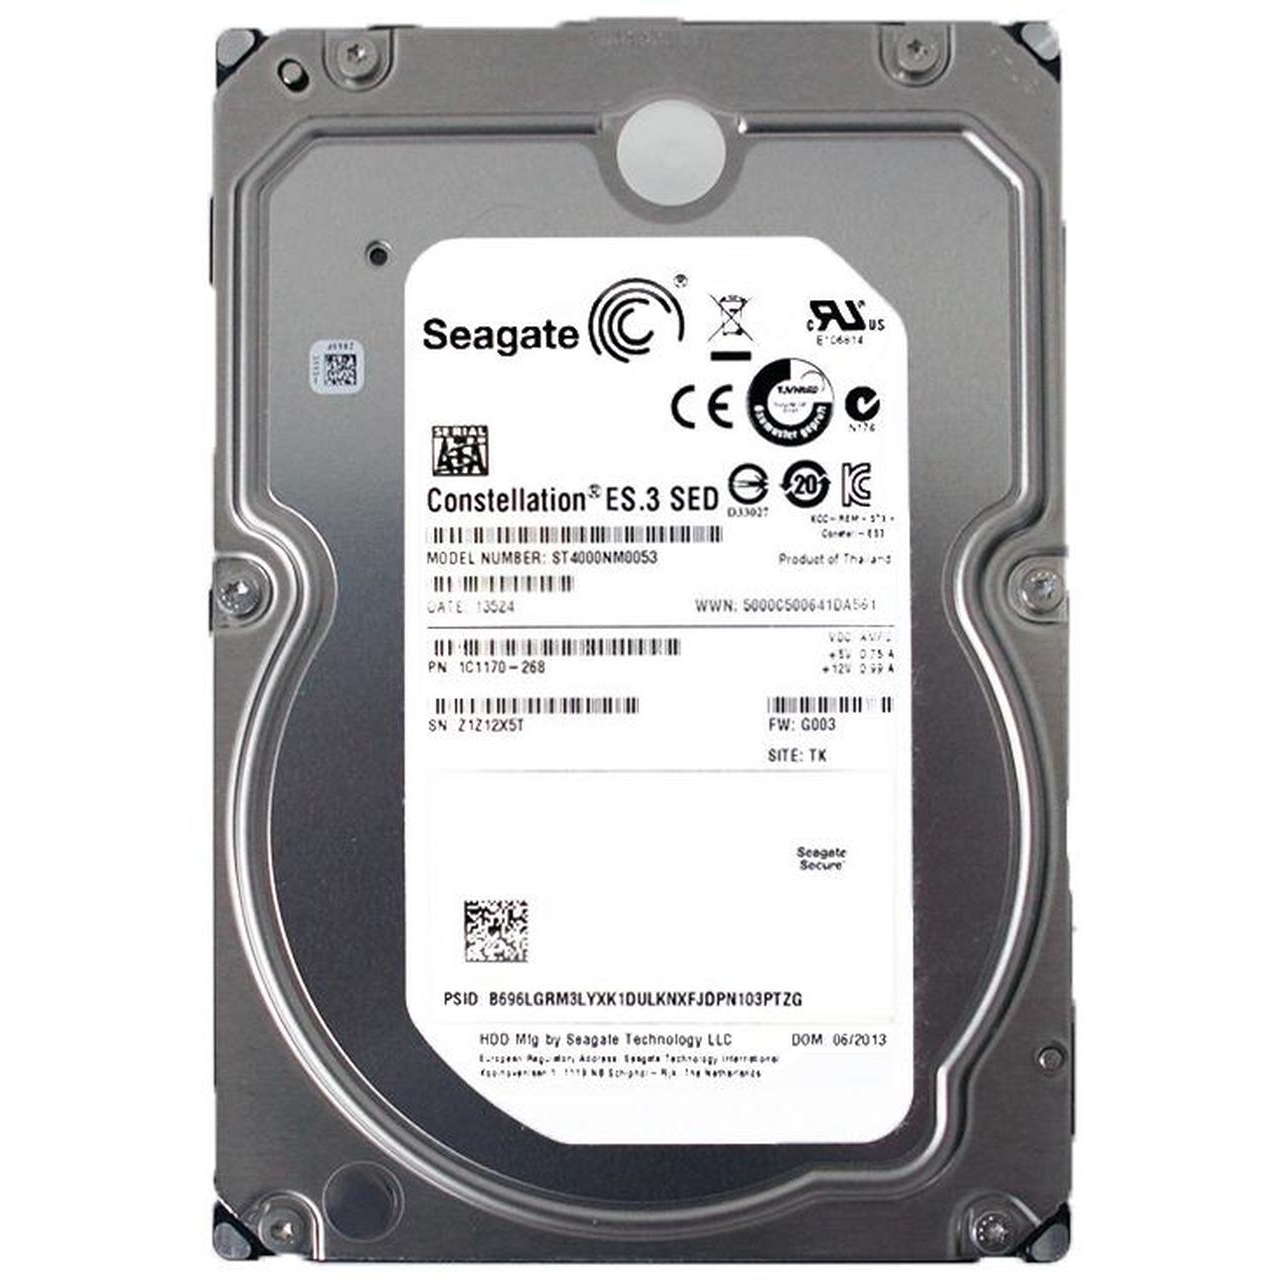 "SEAGATE CONSTELLATION ES.3 4TB 7200RPM 128MB SATA3 6Gbit/sn 3.5""  ST4000NM0053 7/24 RECERTIFIED HDD"